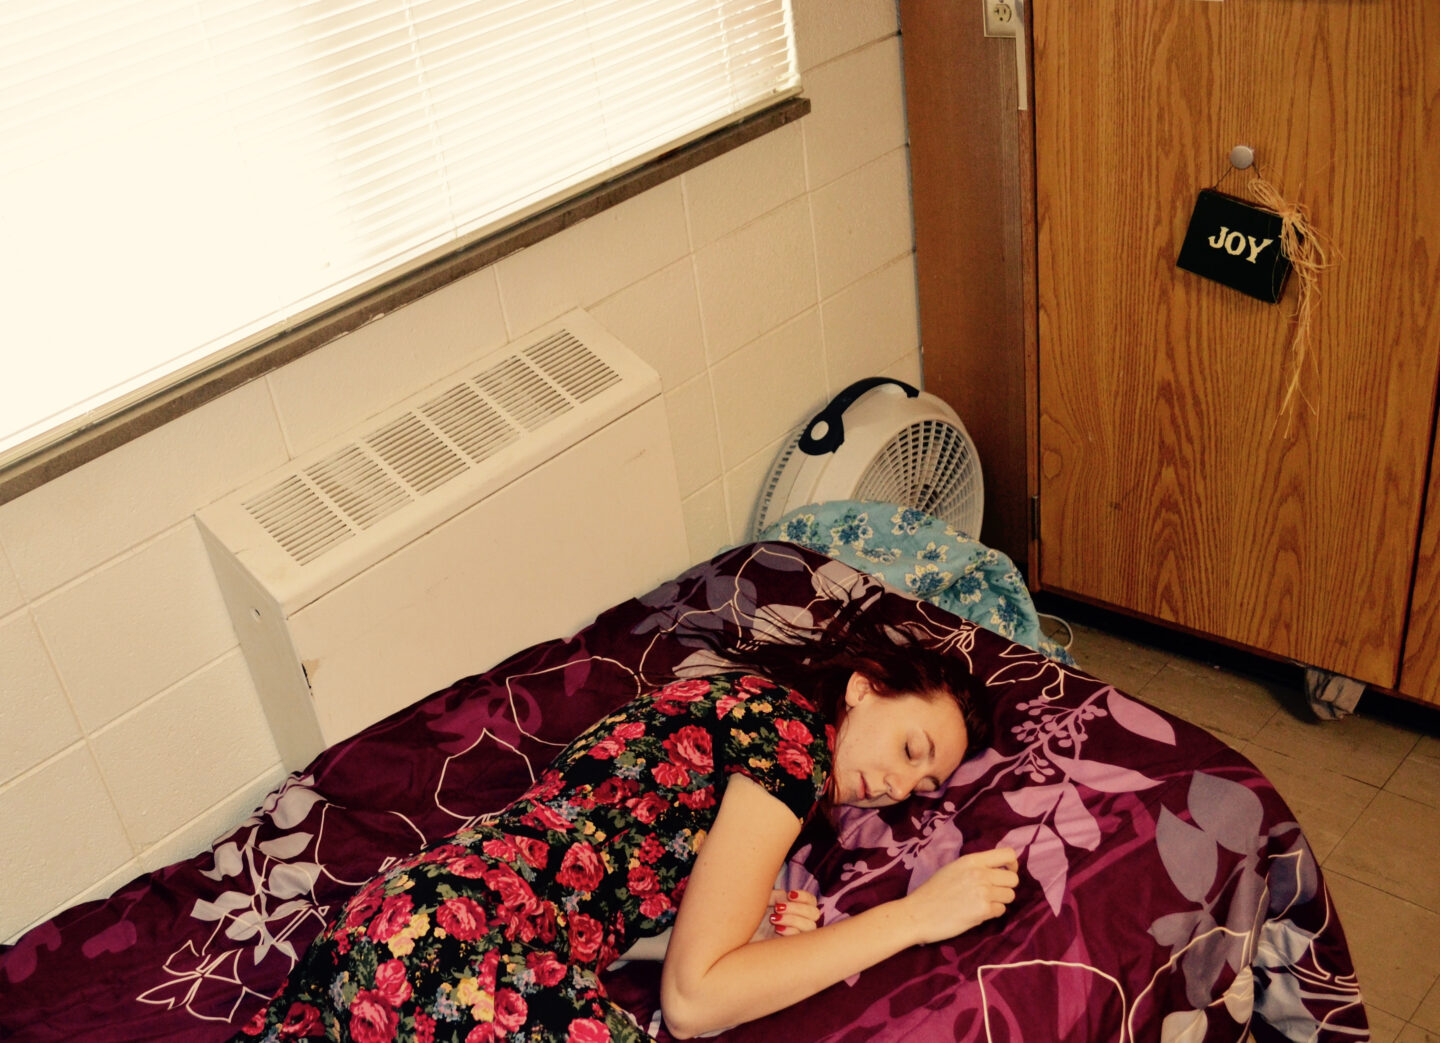 How Do You Survive A Dorm Without Air Conditioning?